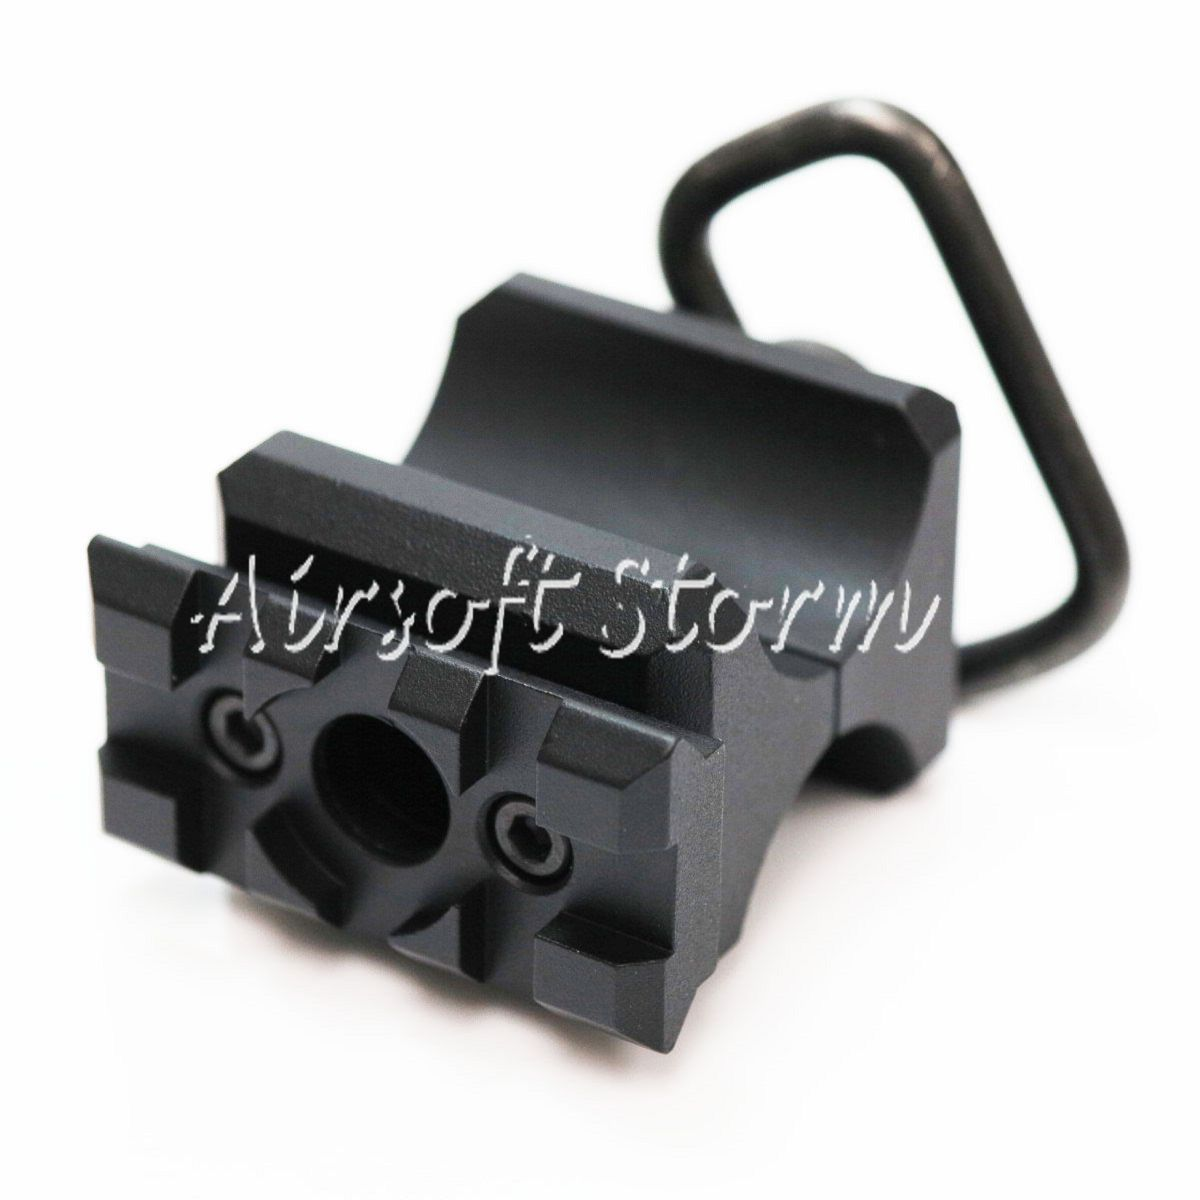 Airsoft SWAT Tactical Gear APS Tactical Picatinny Rail with Sling Swivel for CAM870 Shotgun AEG